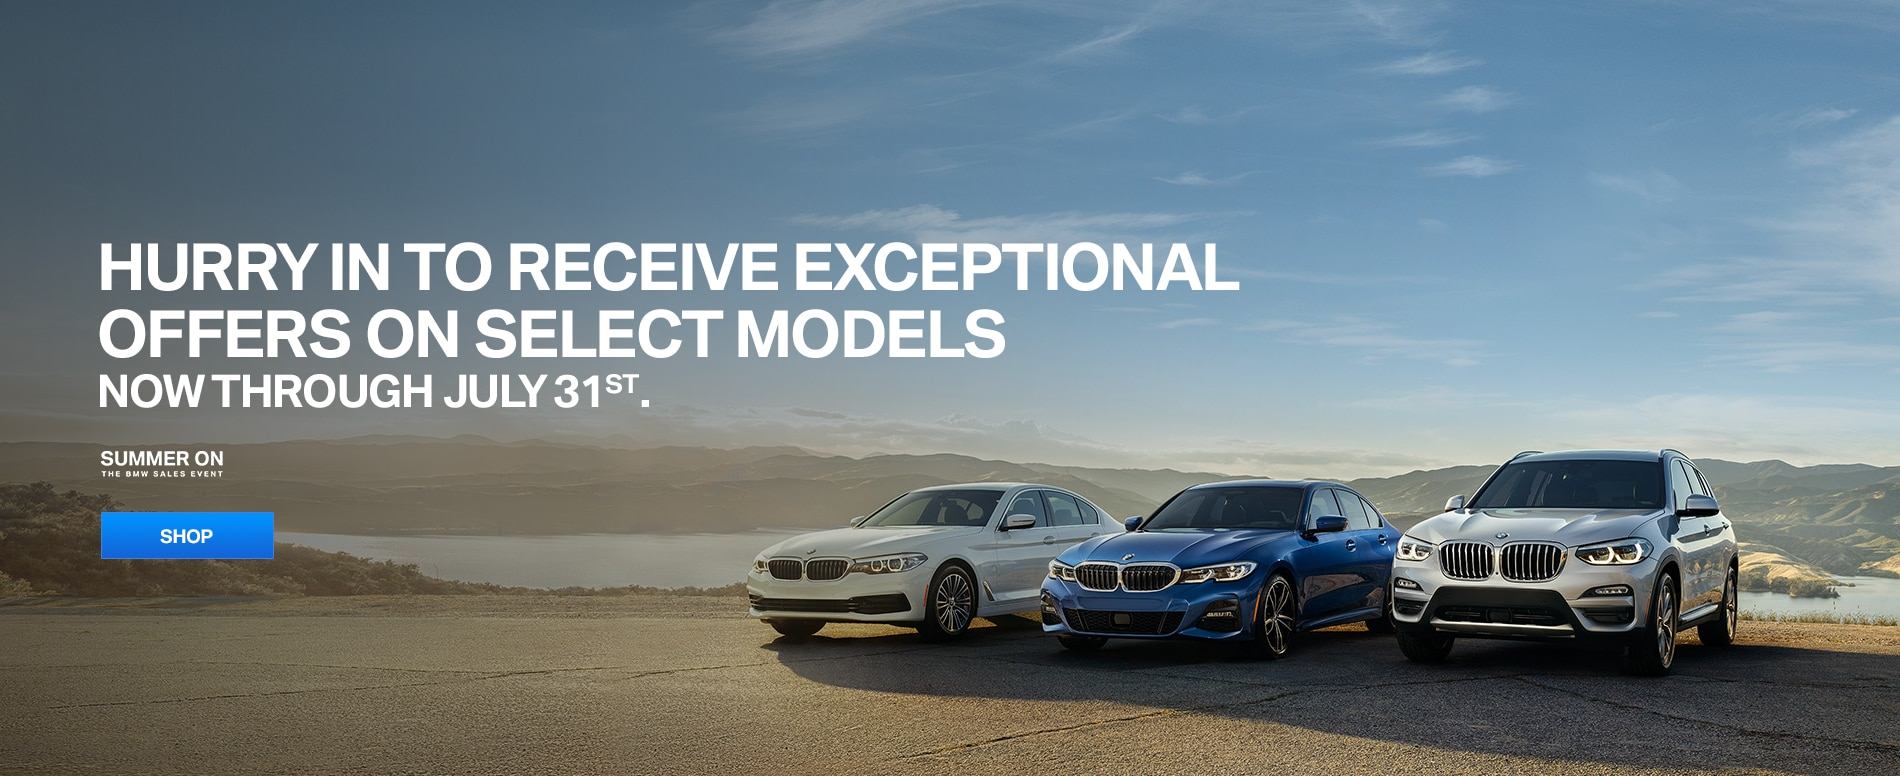 Bmw Dealership Near Me >> Bmw Of Vista Bmw Dealership Near Me In Vista Ca